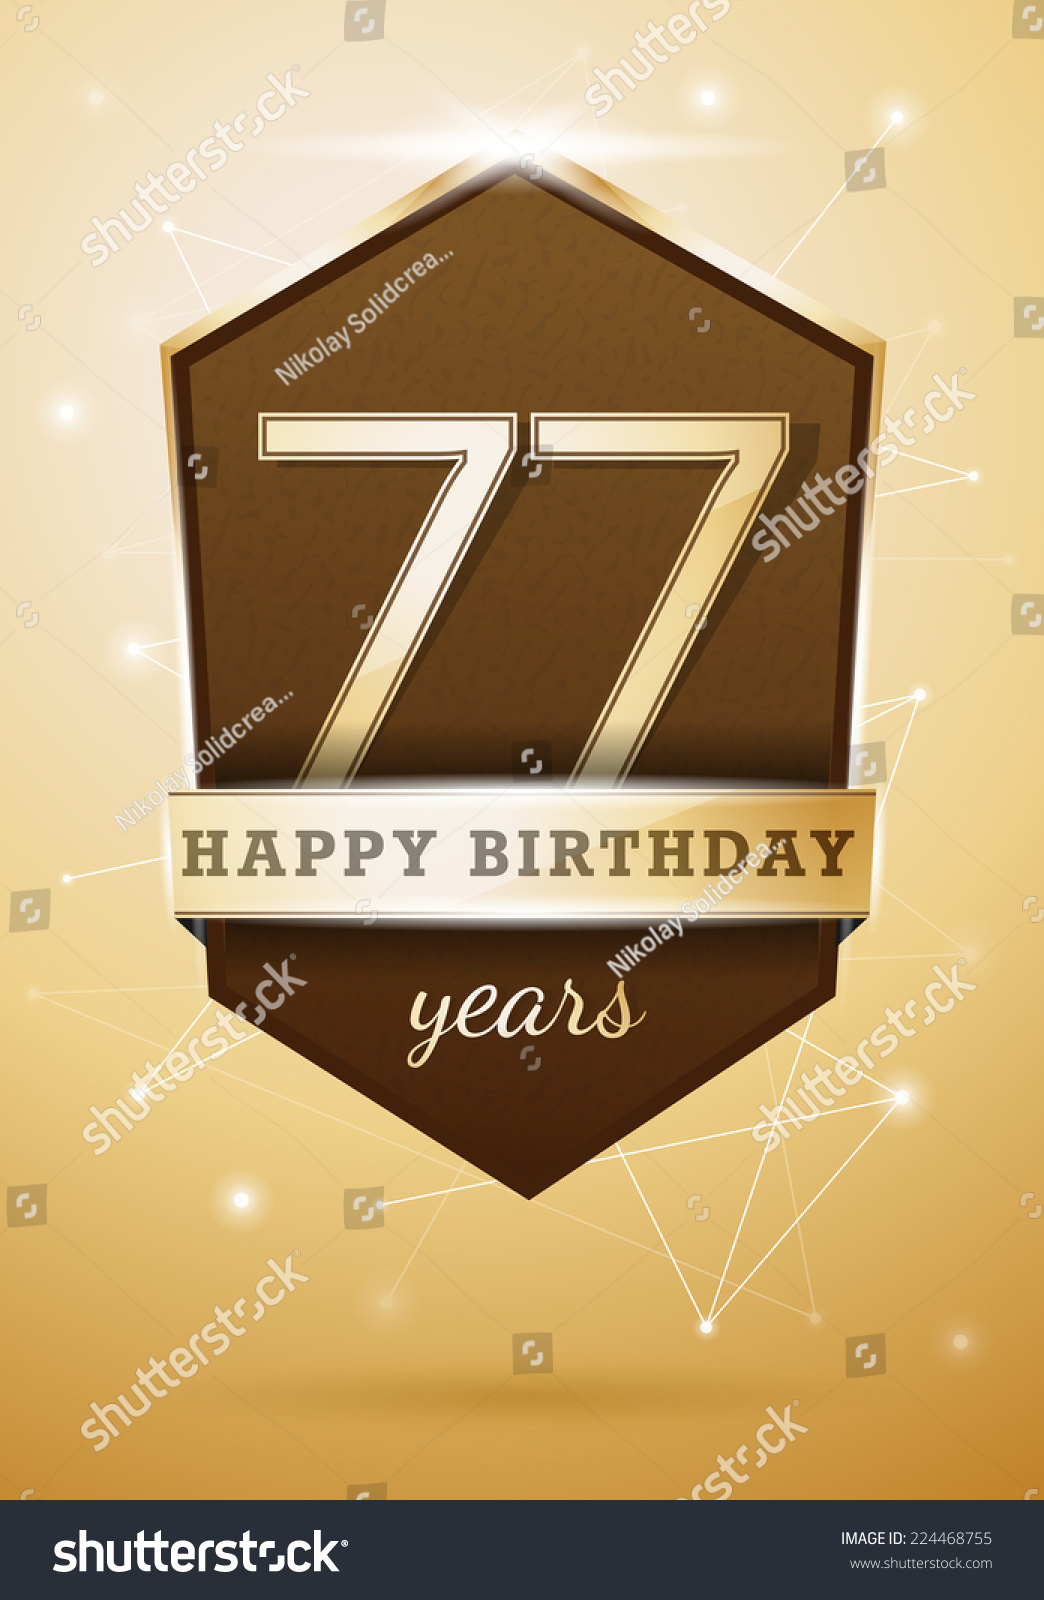 77 Years Anniversary Celebration Design Happy Birthday Card